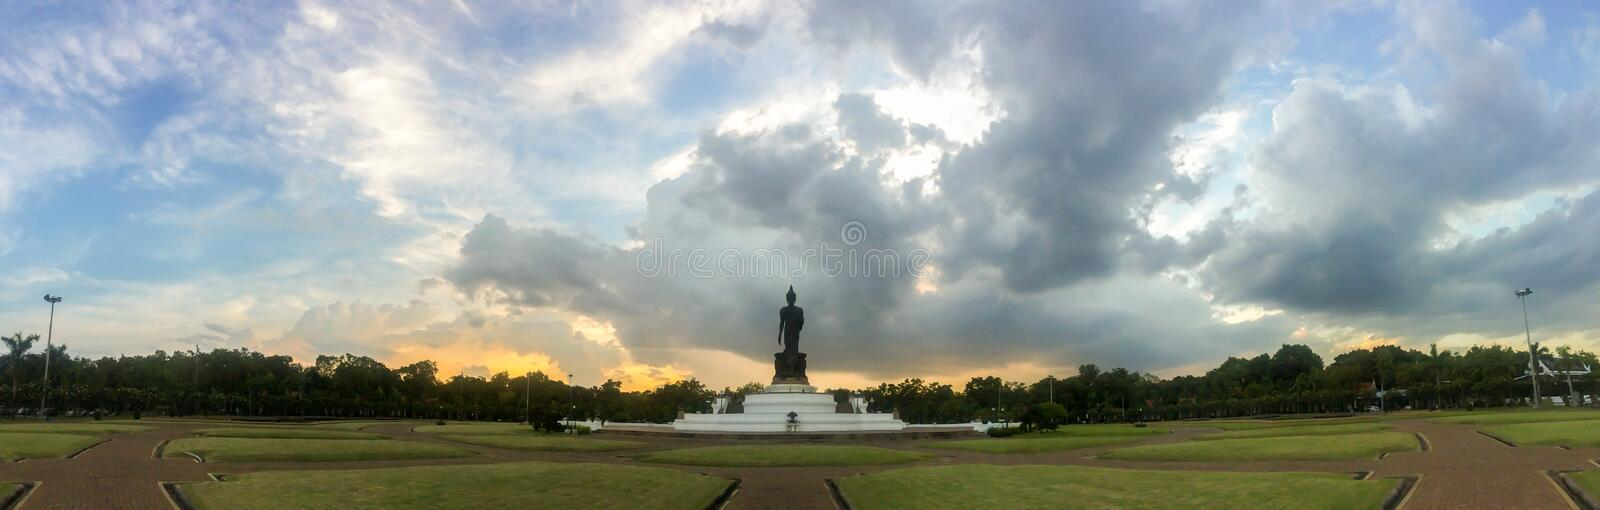 Phutthamonthon is a Buddhist park in the Phutthamonthon District stock photography